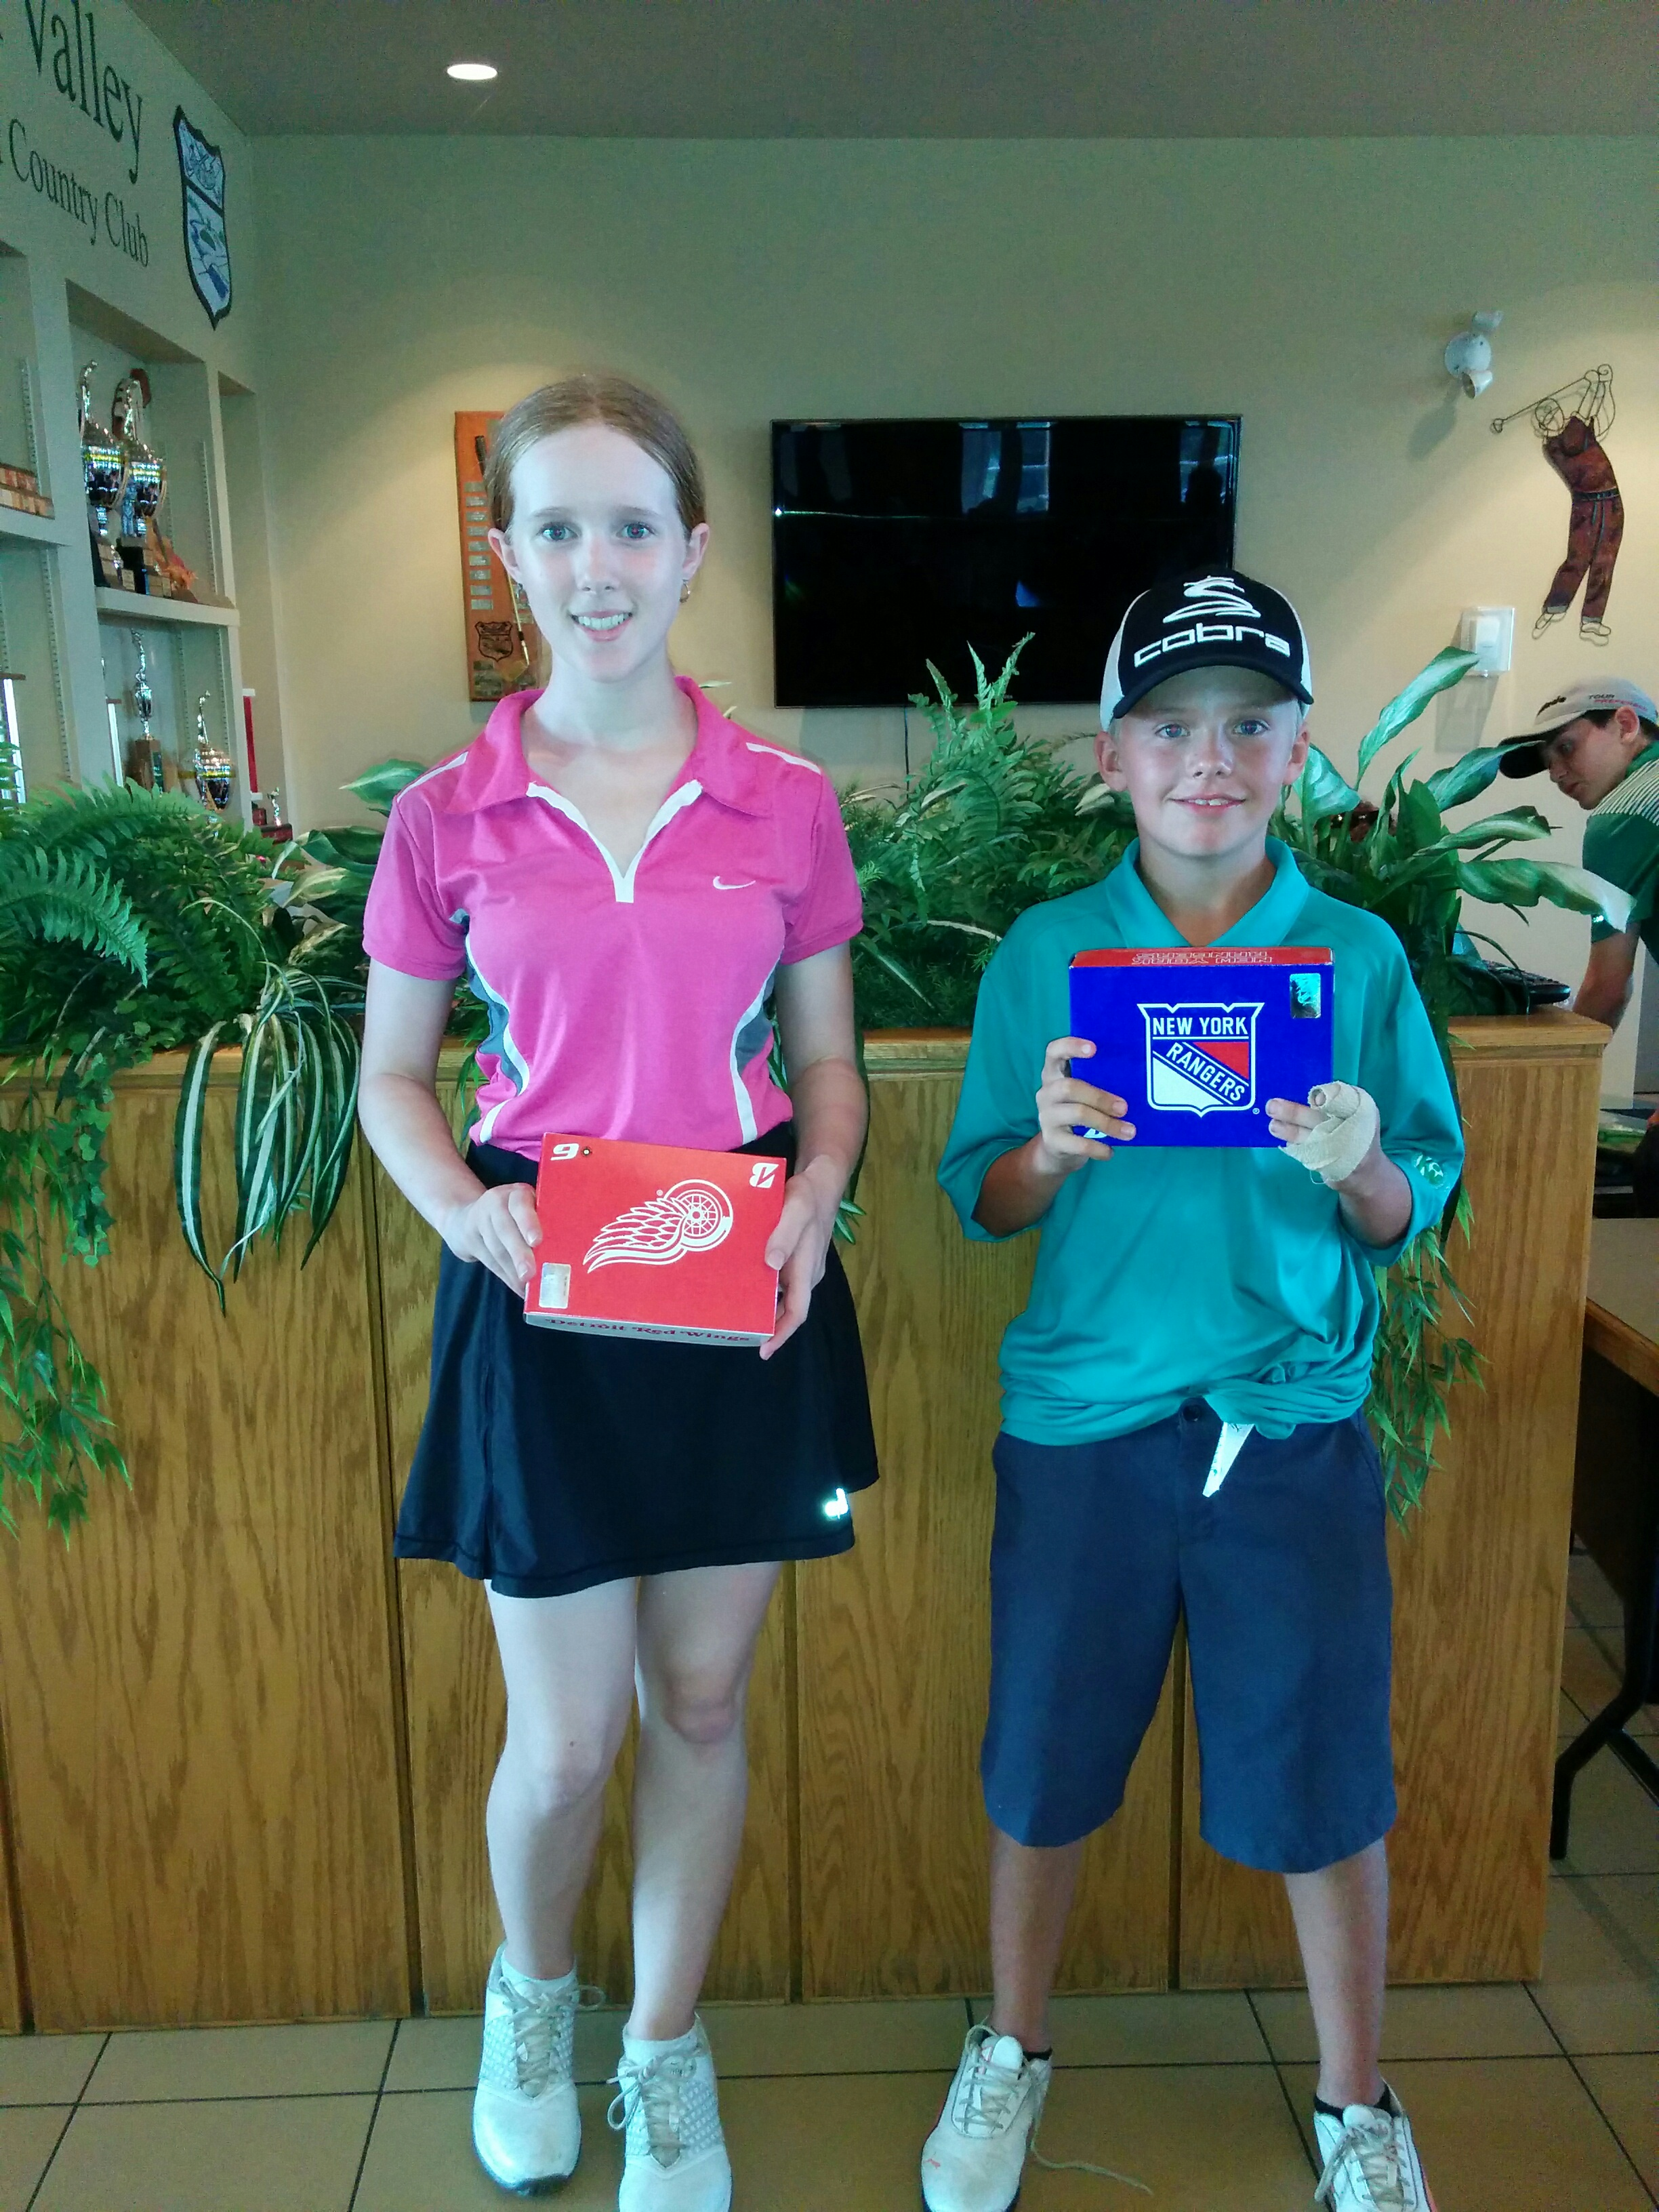 MIRANDA COOK 2ND PEEWEE GIRLS DIV. ASHBURN GAVIN YVES 2ND PEEWEE BOYS DIV. GLEN LOVETT